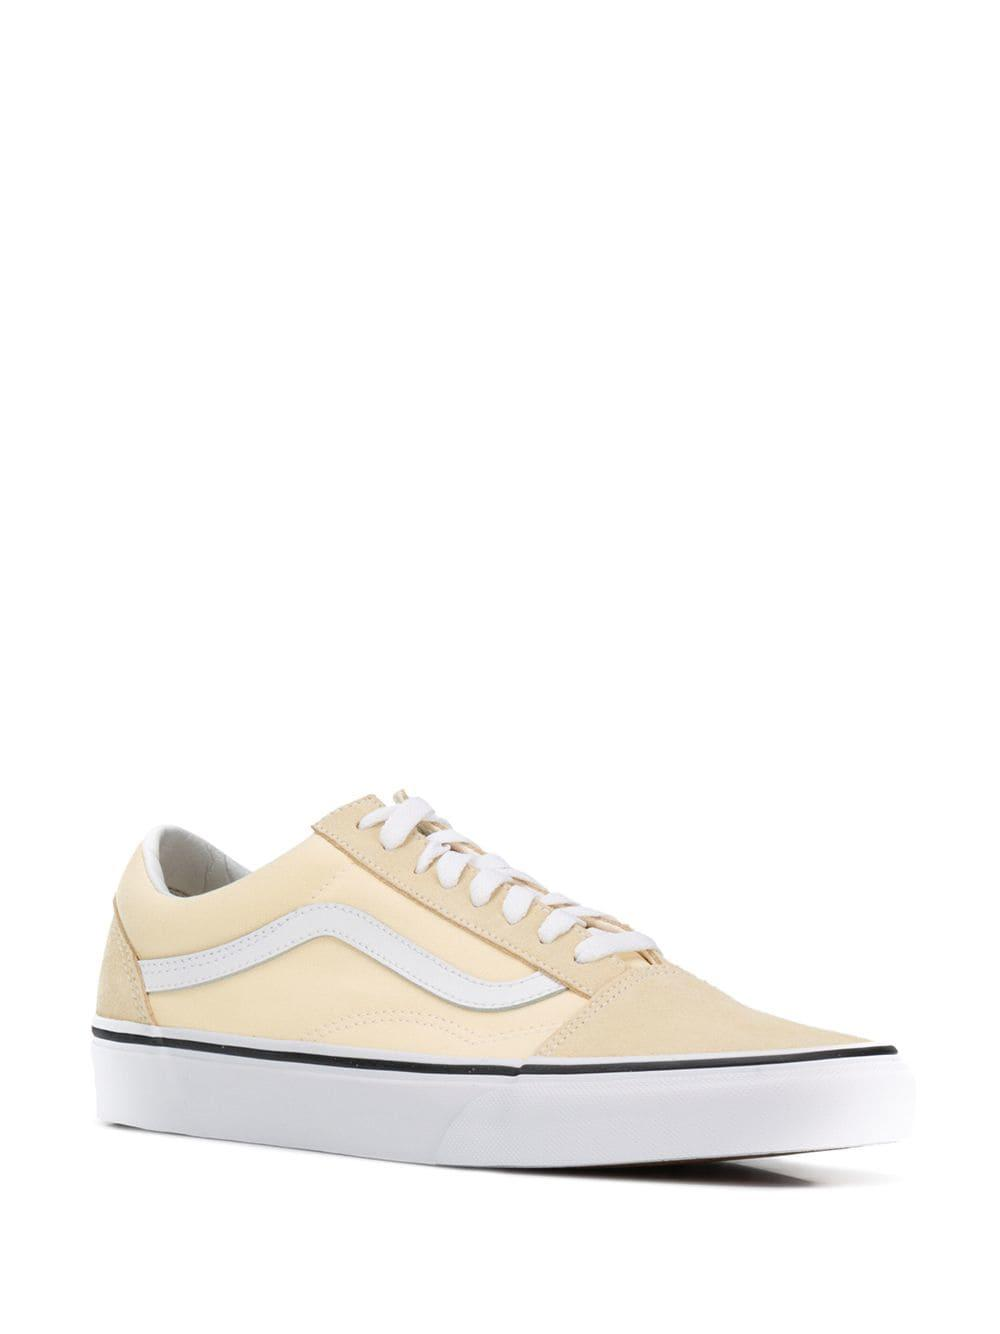 7a0a7ed2f0d3cd Vans - Yellow Old Skool 36 Dx Sneakers for Men - Lyst. View fullscreen